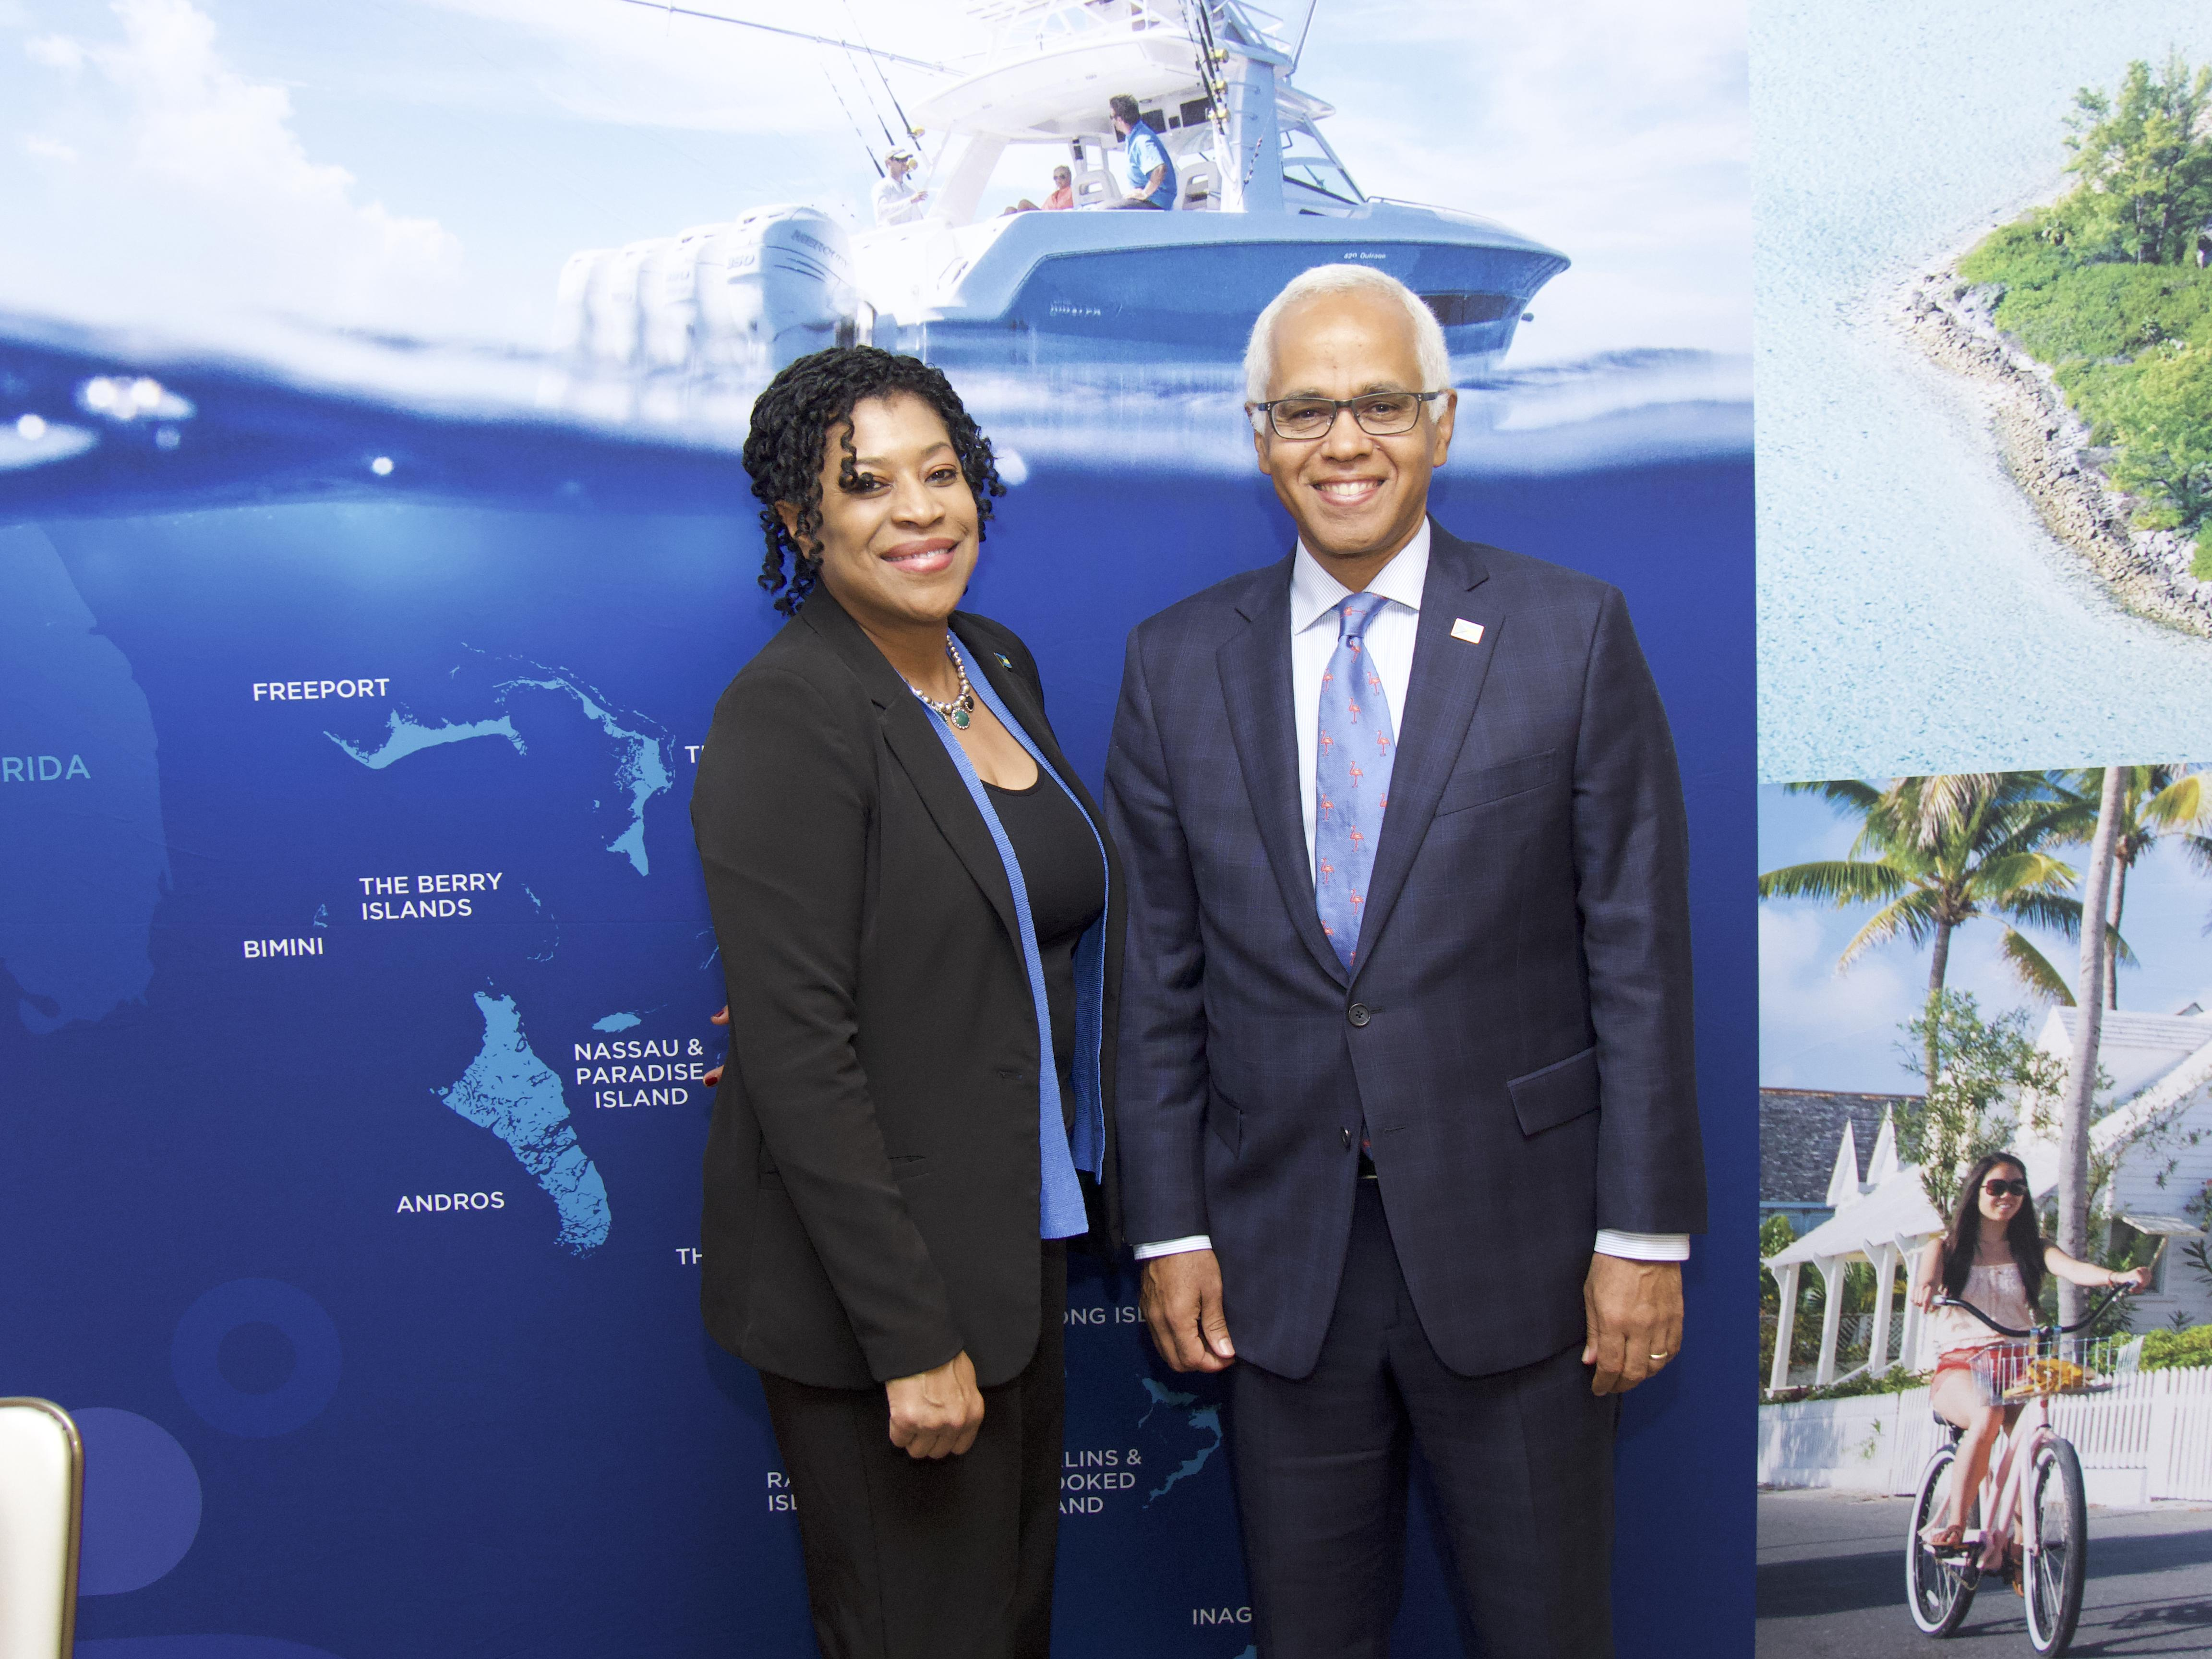 Charnelle Brown, Deputy High Commissioner along with Bahamas Minister of Tourism, Hon. Dionisio D'Aguilar at Vancouver Media event